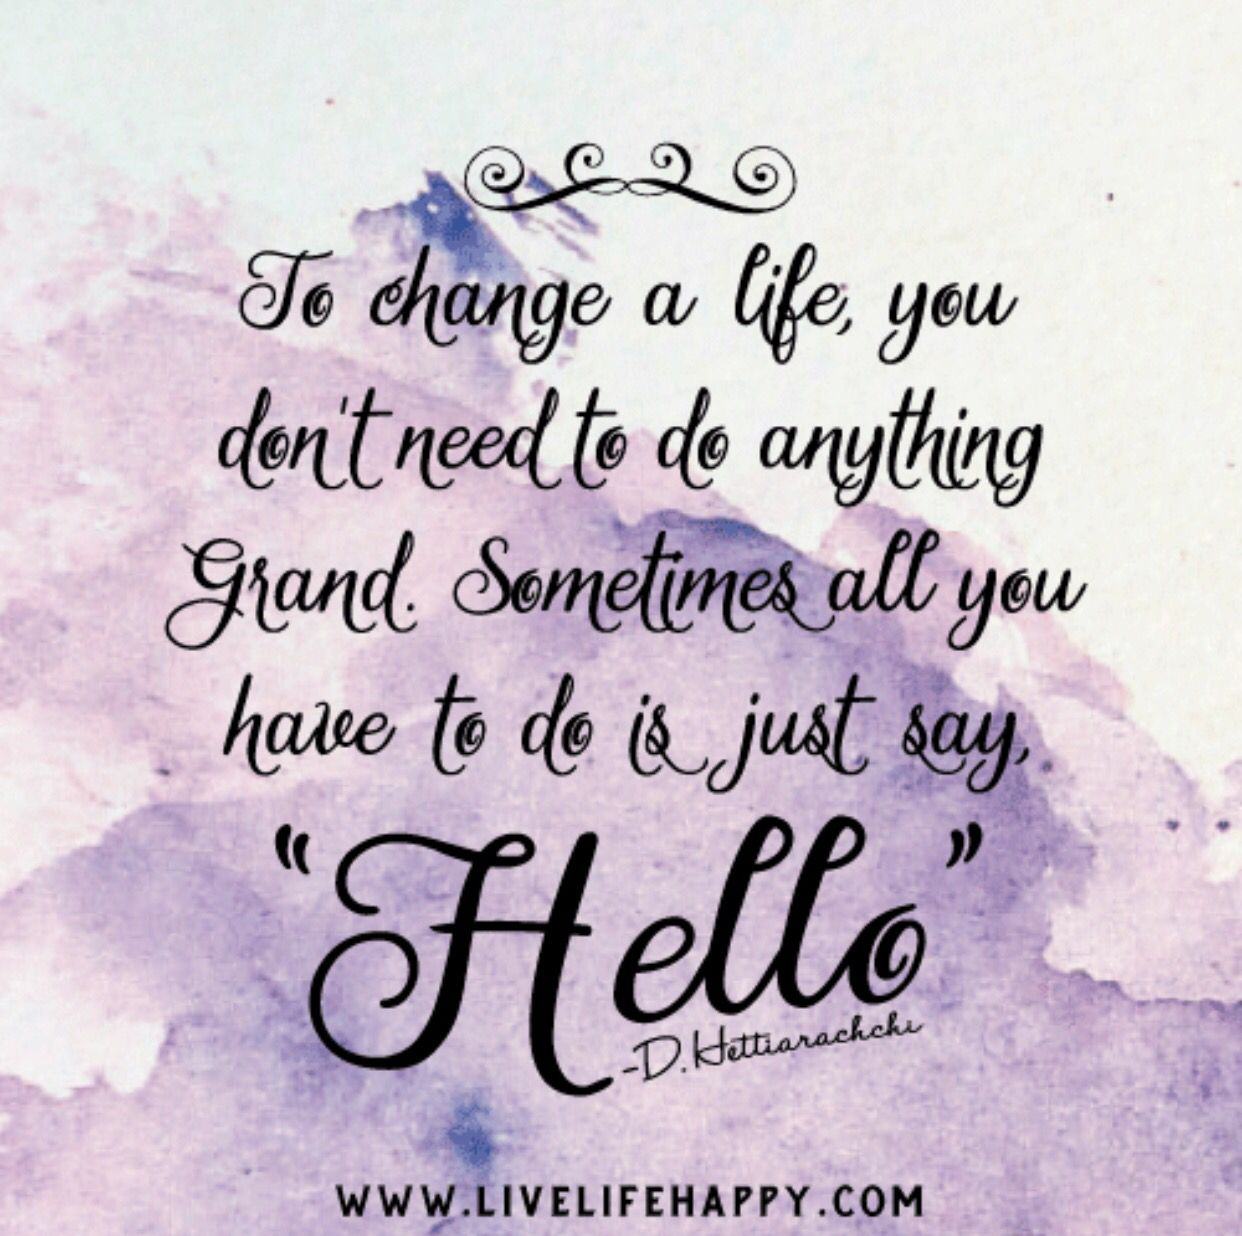 Can You Do Me A Favour Go And Say Hello To Someone Today A Old Friend A Relative You Haven T Spoke Hello Quotes Live Life Happy Inspirational Quotes